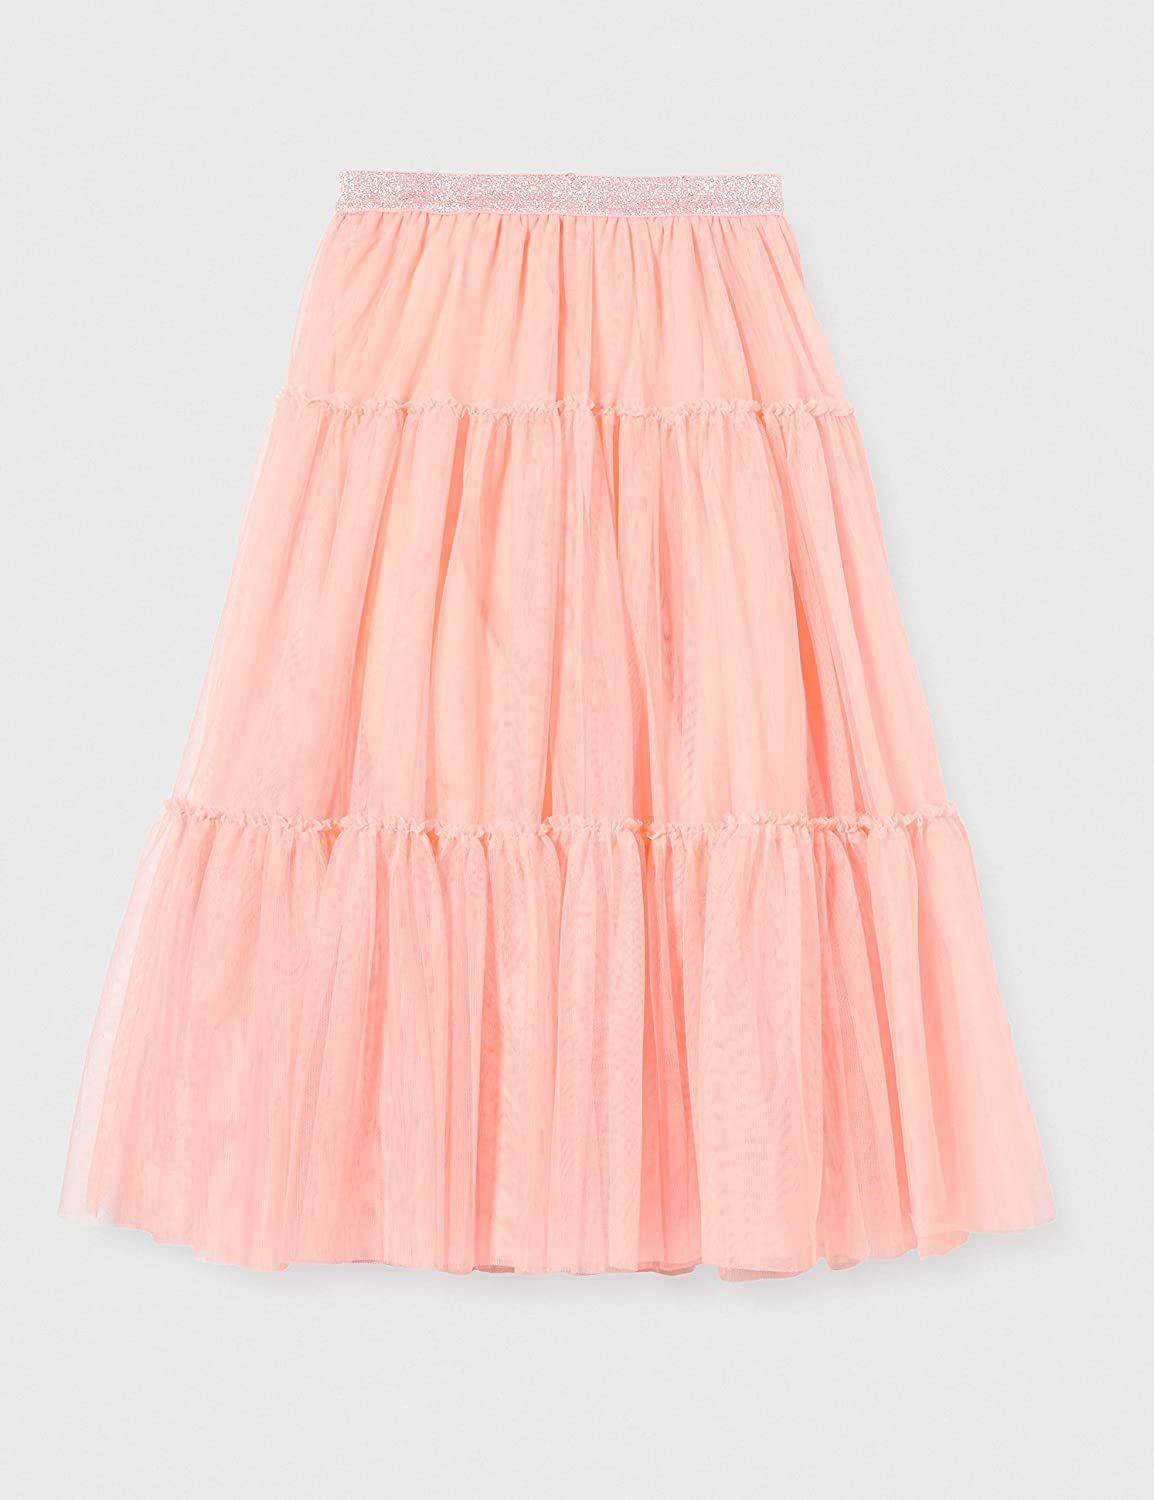 IKKS Junior Boys Jupe Tulle Skirt P/êche 16 Pink 12A